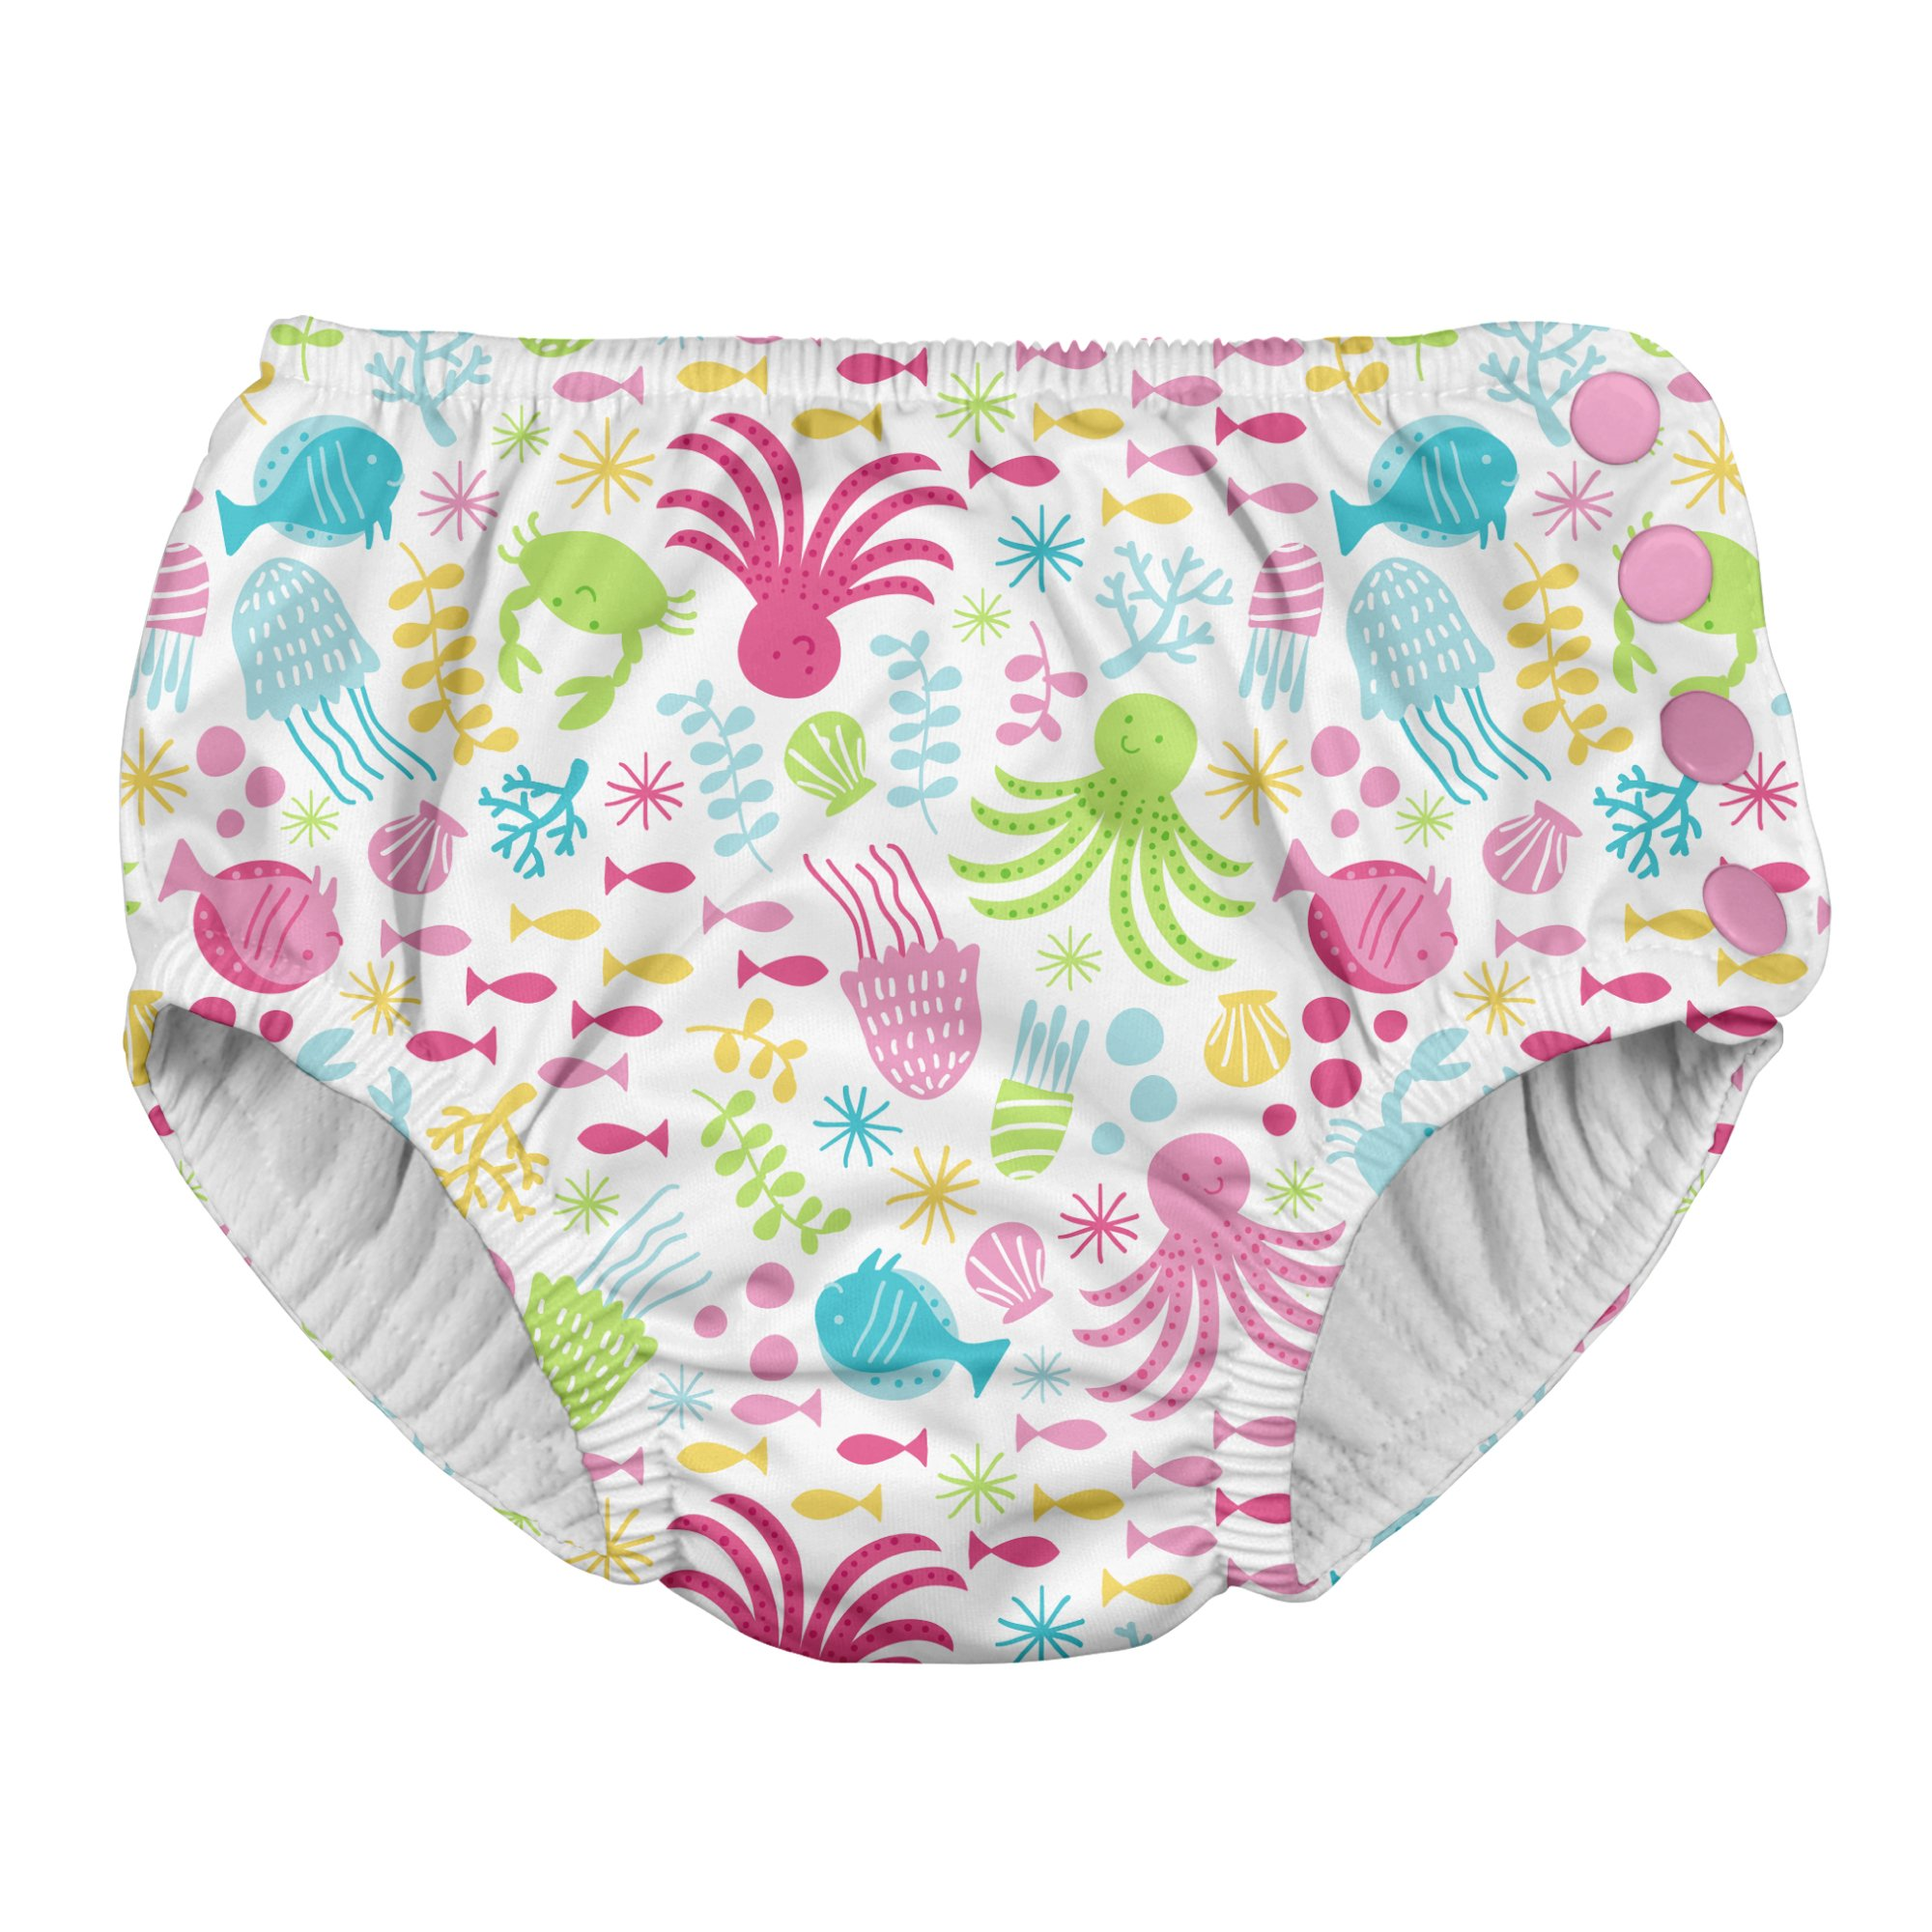 i play. Baby Toddler Girls Snap Reusable Absorbent Swimsuit Diaper, White Sea Pals, 3T by i play.